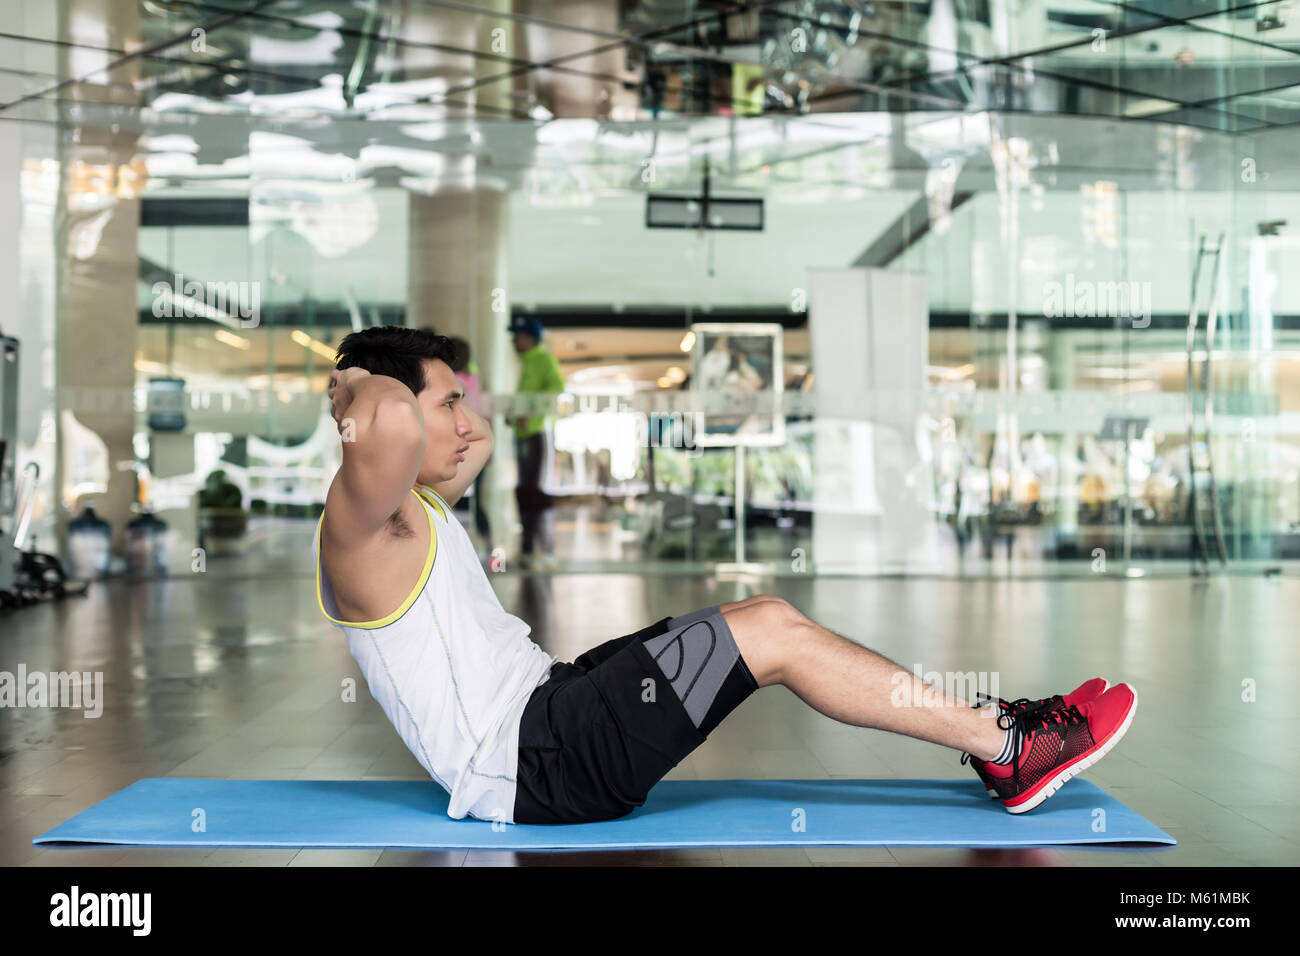 Young Man Sitting Down While Doing Crunches For The Abdominal